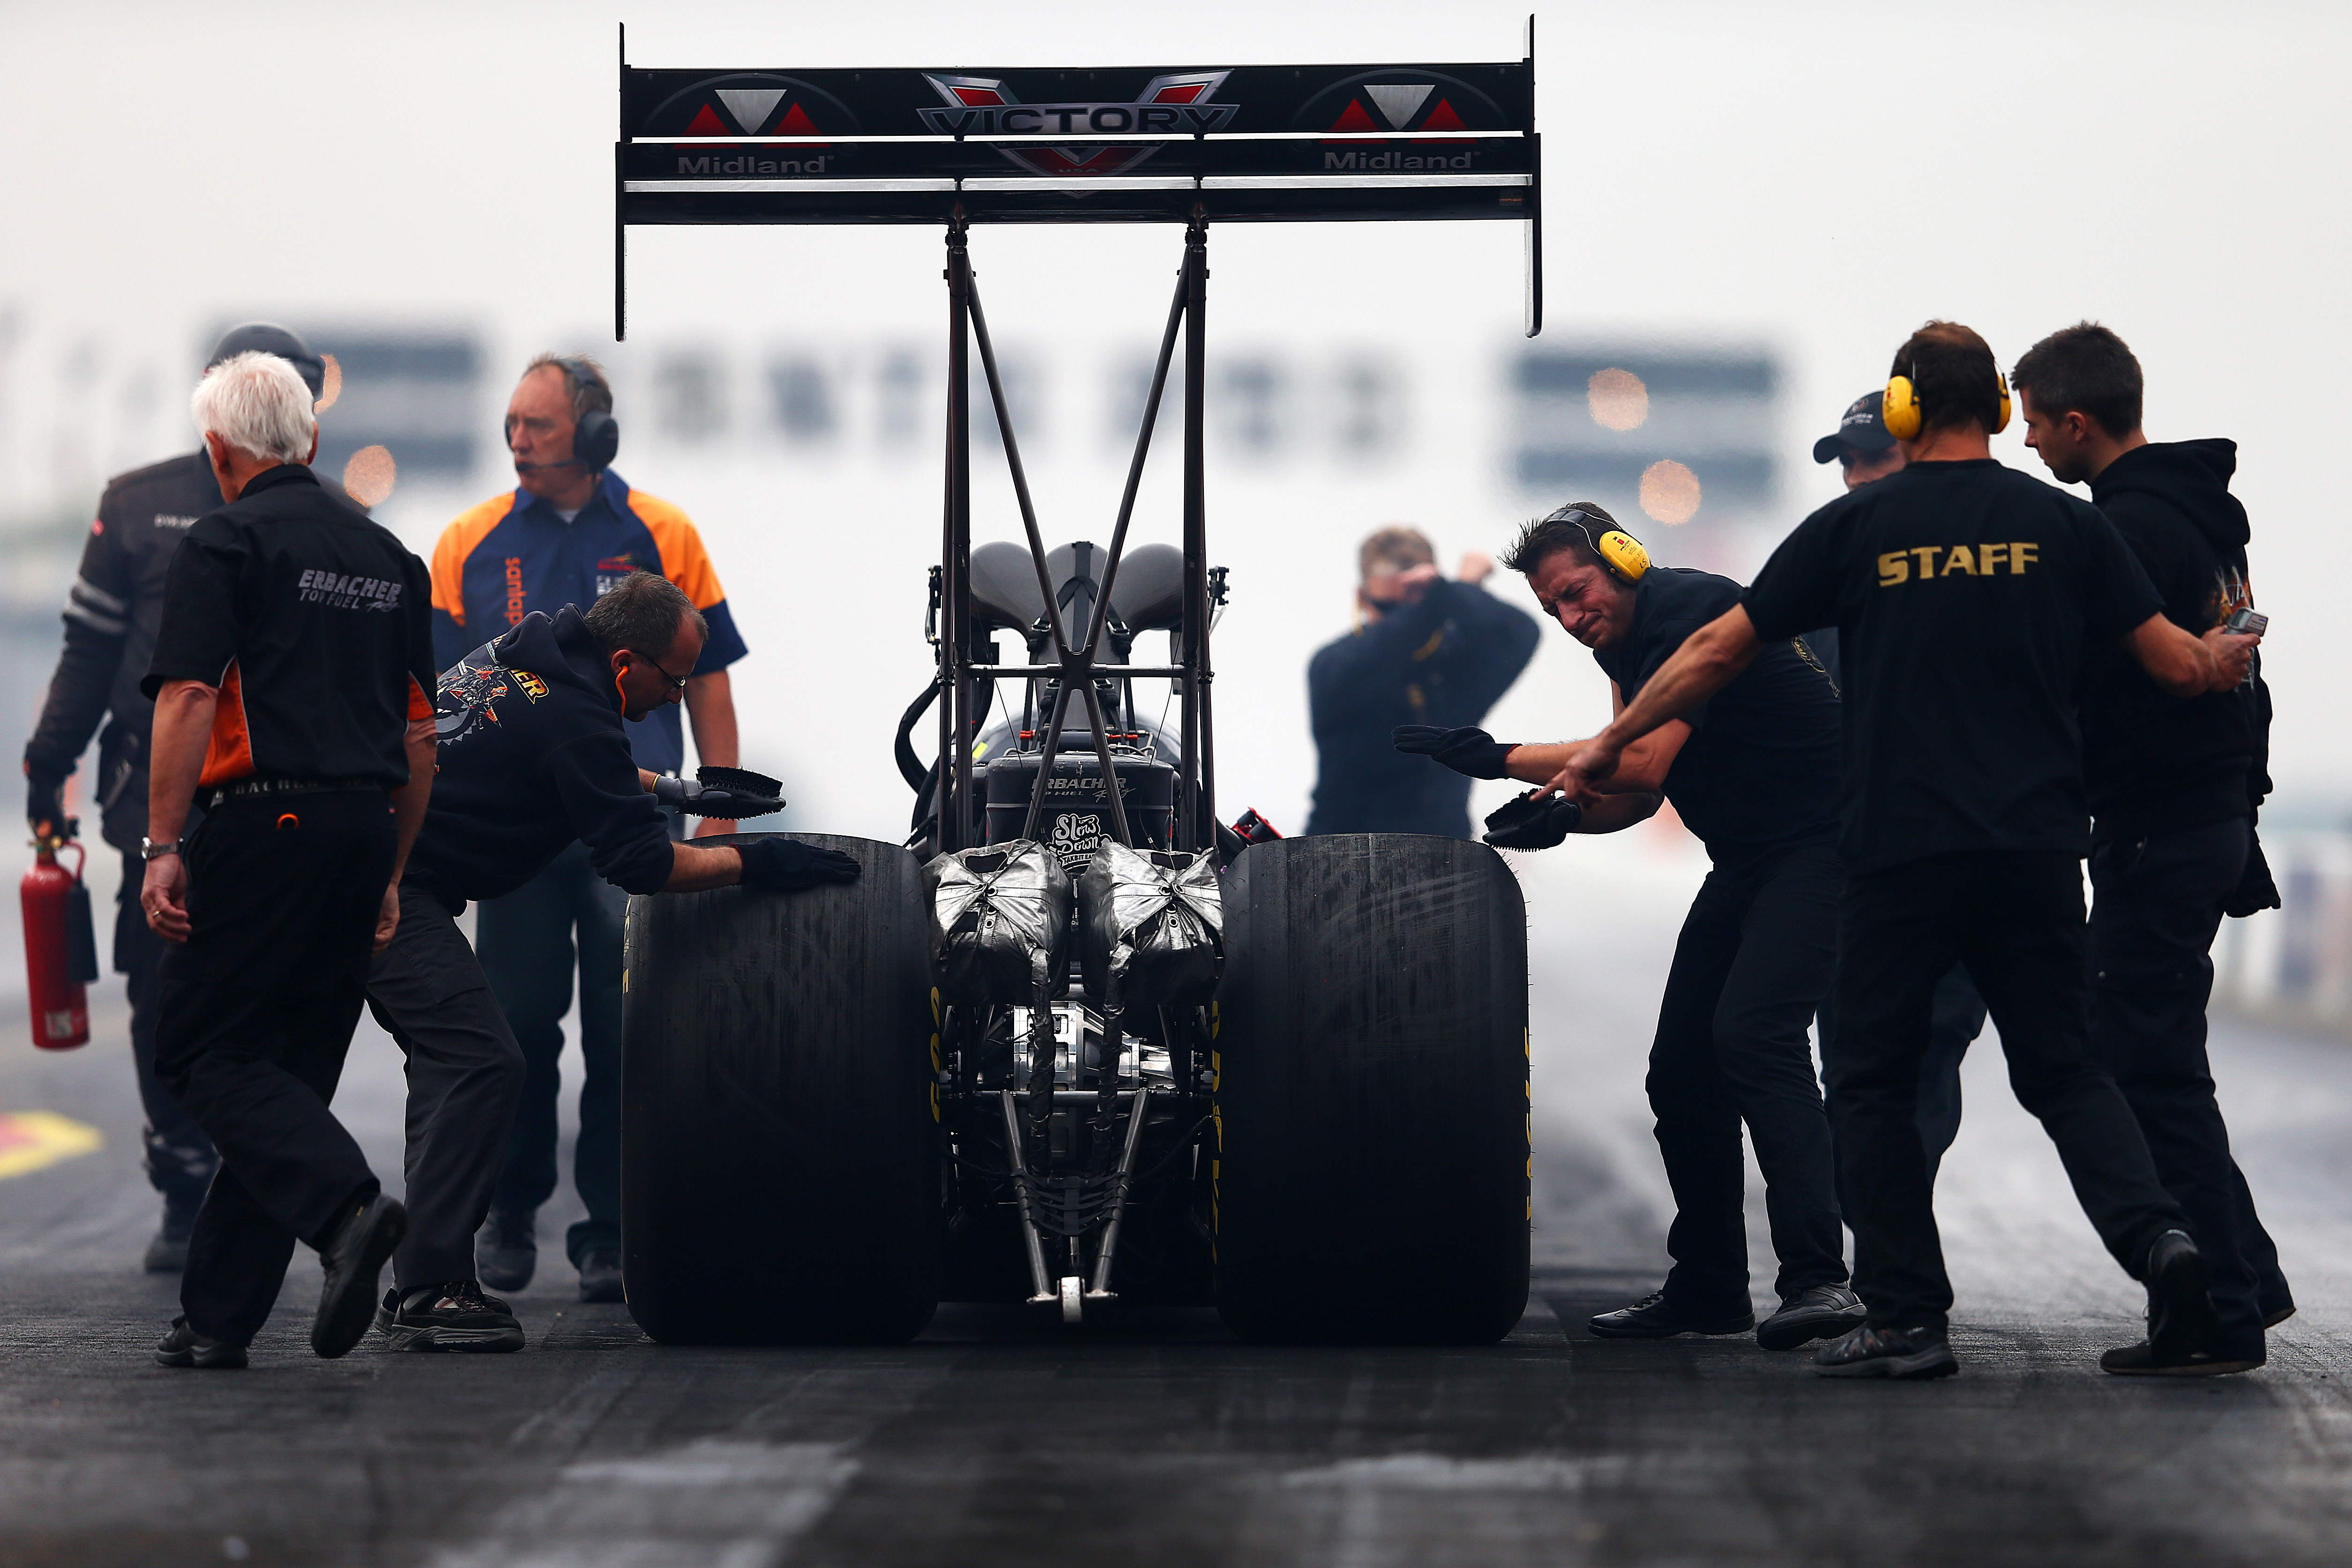 Ronnie Davis: Drag Racer Dies From Injuries Sustained in Crash, Race Track Says